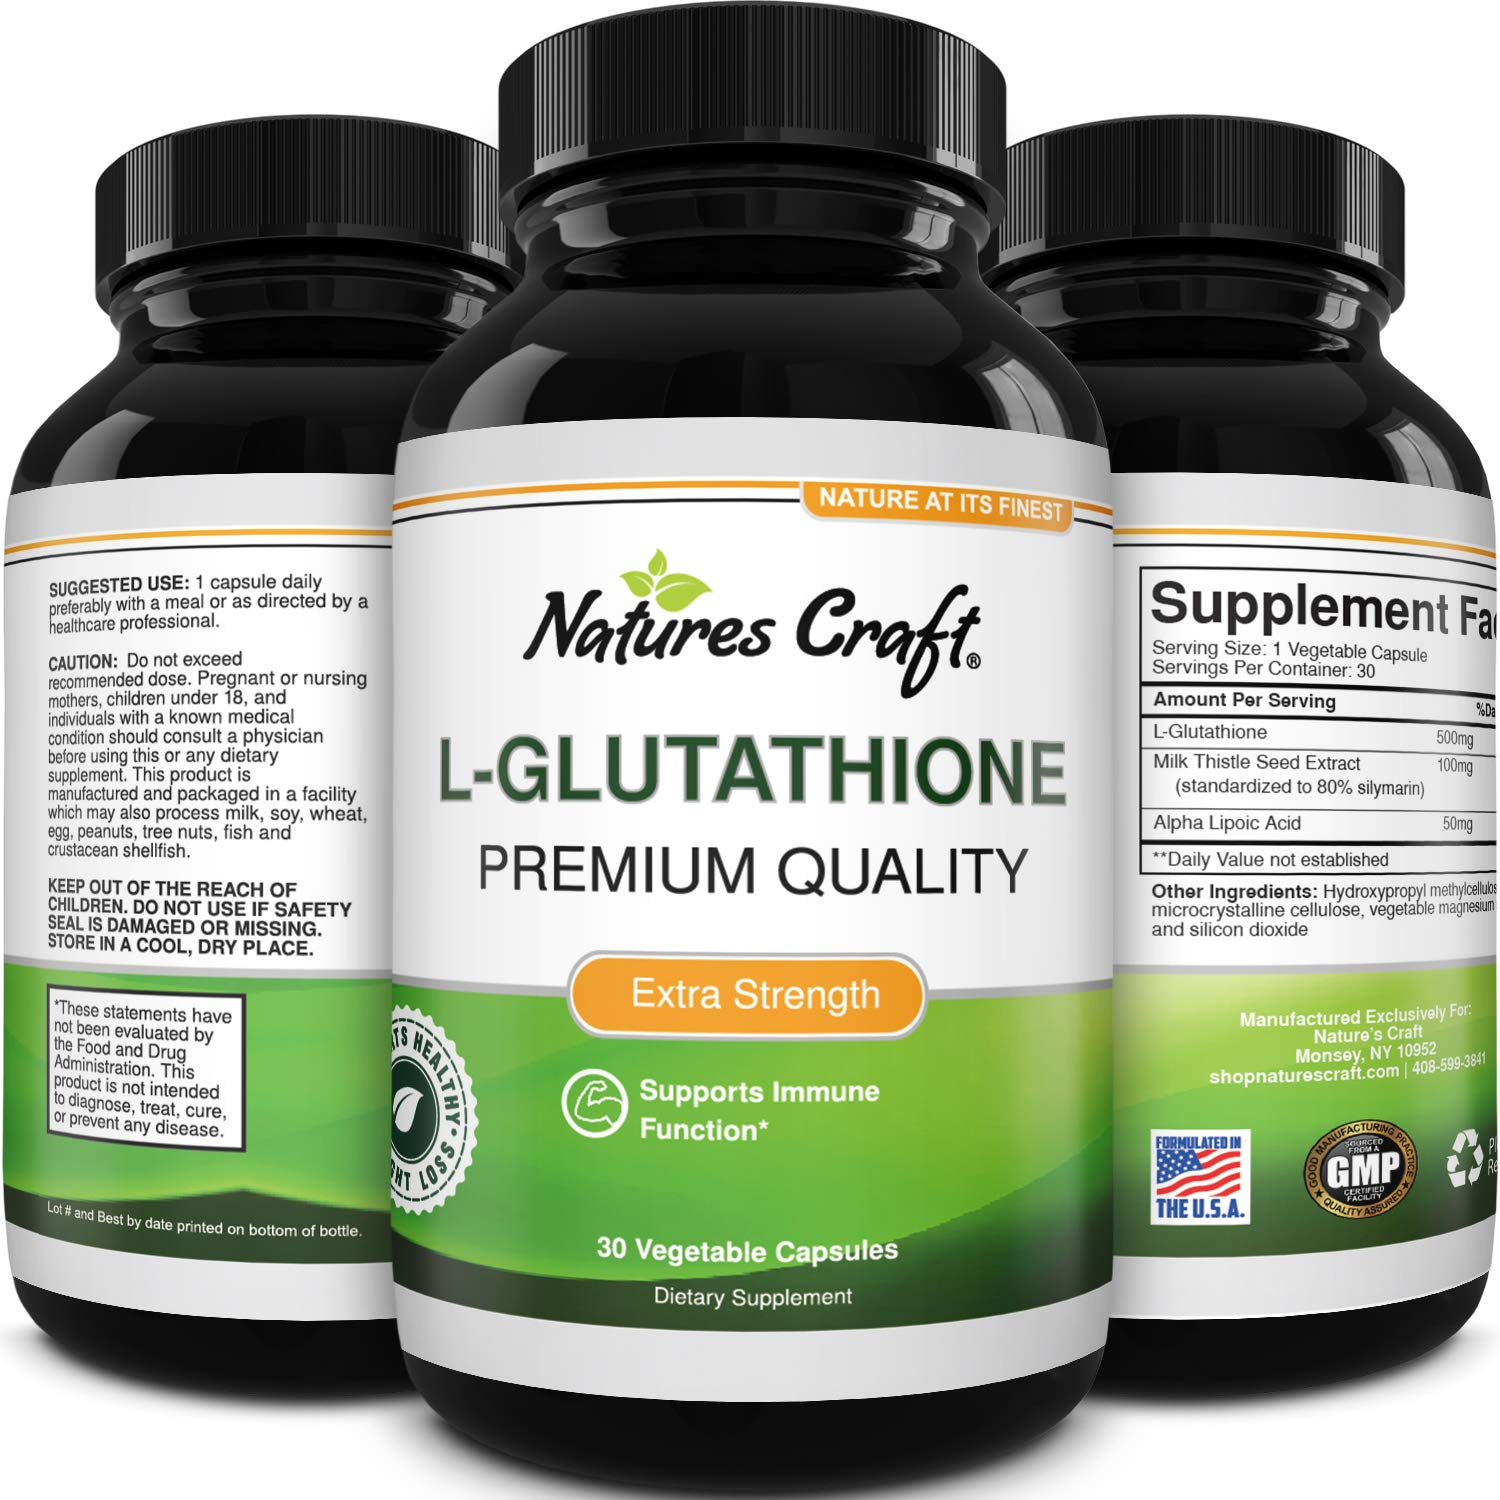 Pure Glutathione + Milk Thistle Extract Supplement - Potent Antioxidant for Immune System Support - Natural Skin Whitening Pills Give An Even Skin Complexion - 650 mg Serving by Natures Craft